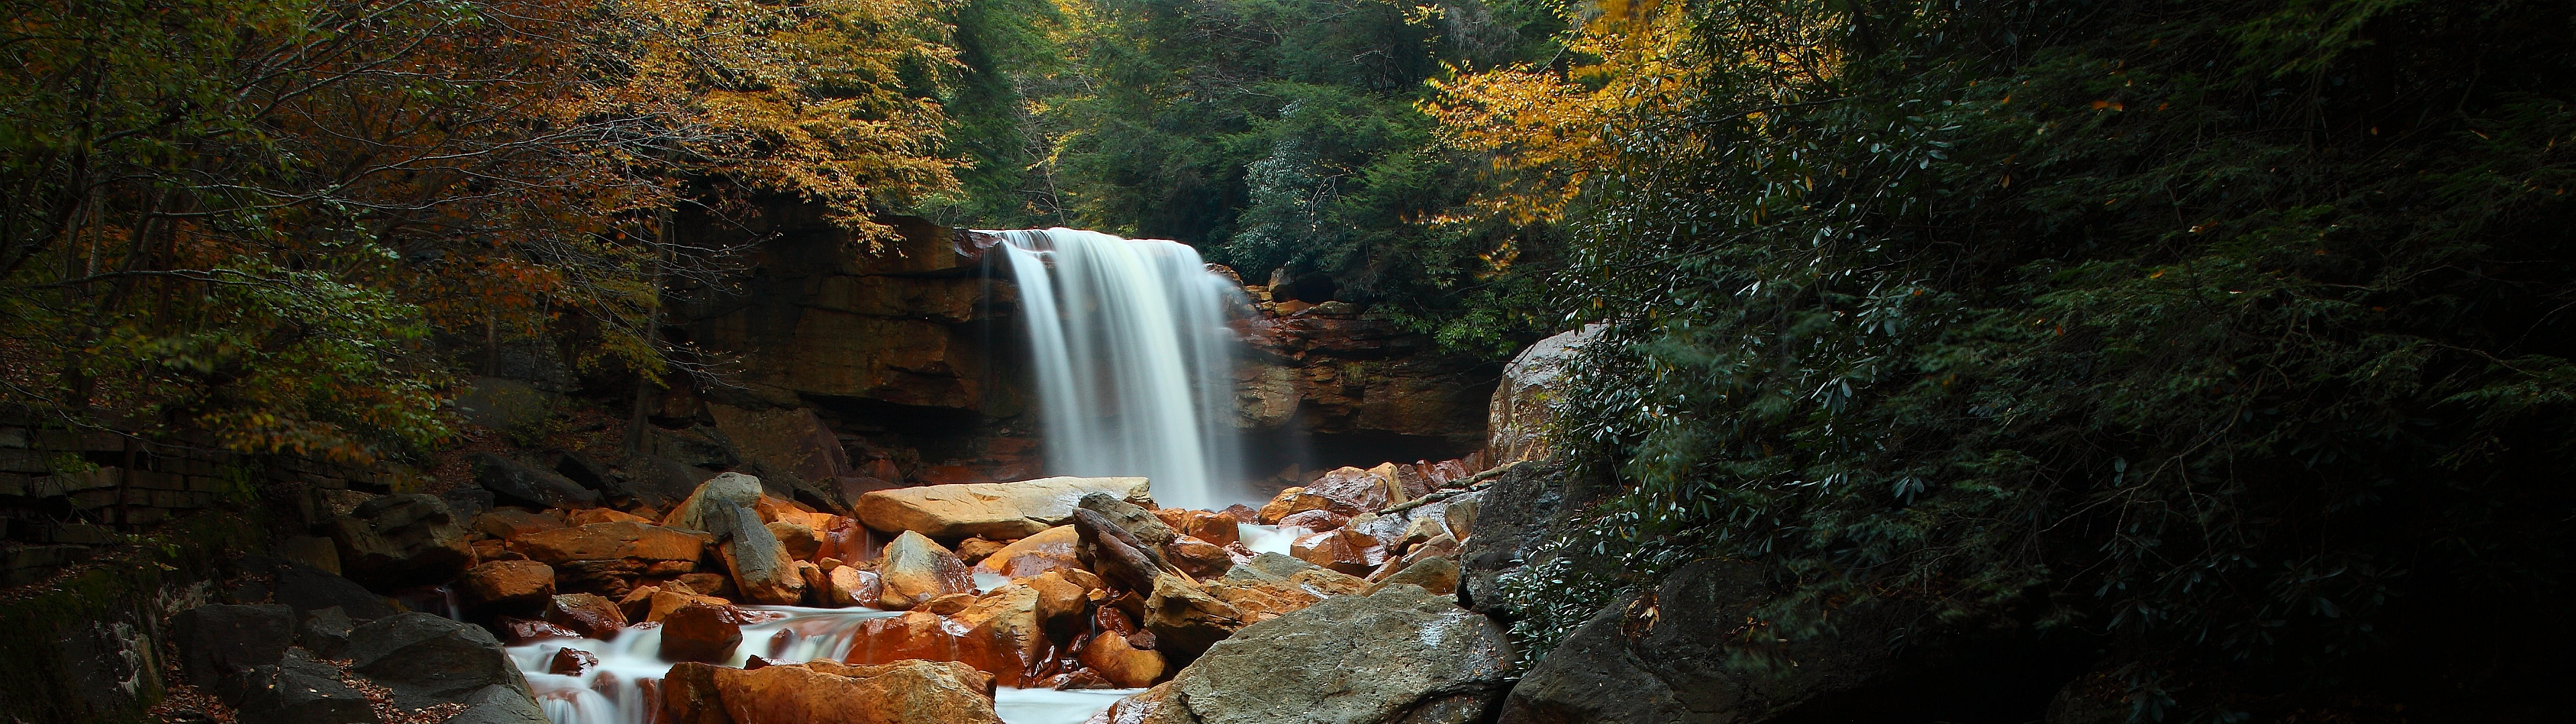 Rocks-waterfalls-autumn-foliage_-_West_Virginia_-_Forest.jpg